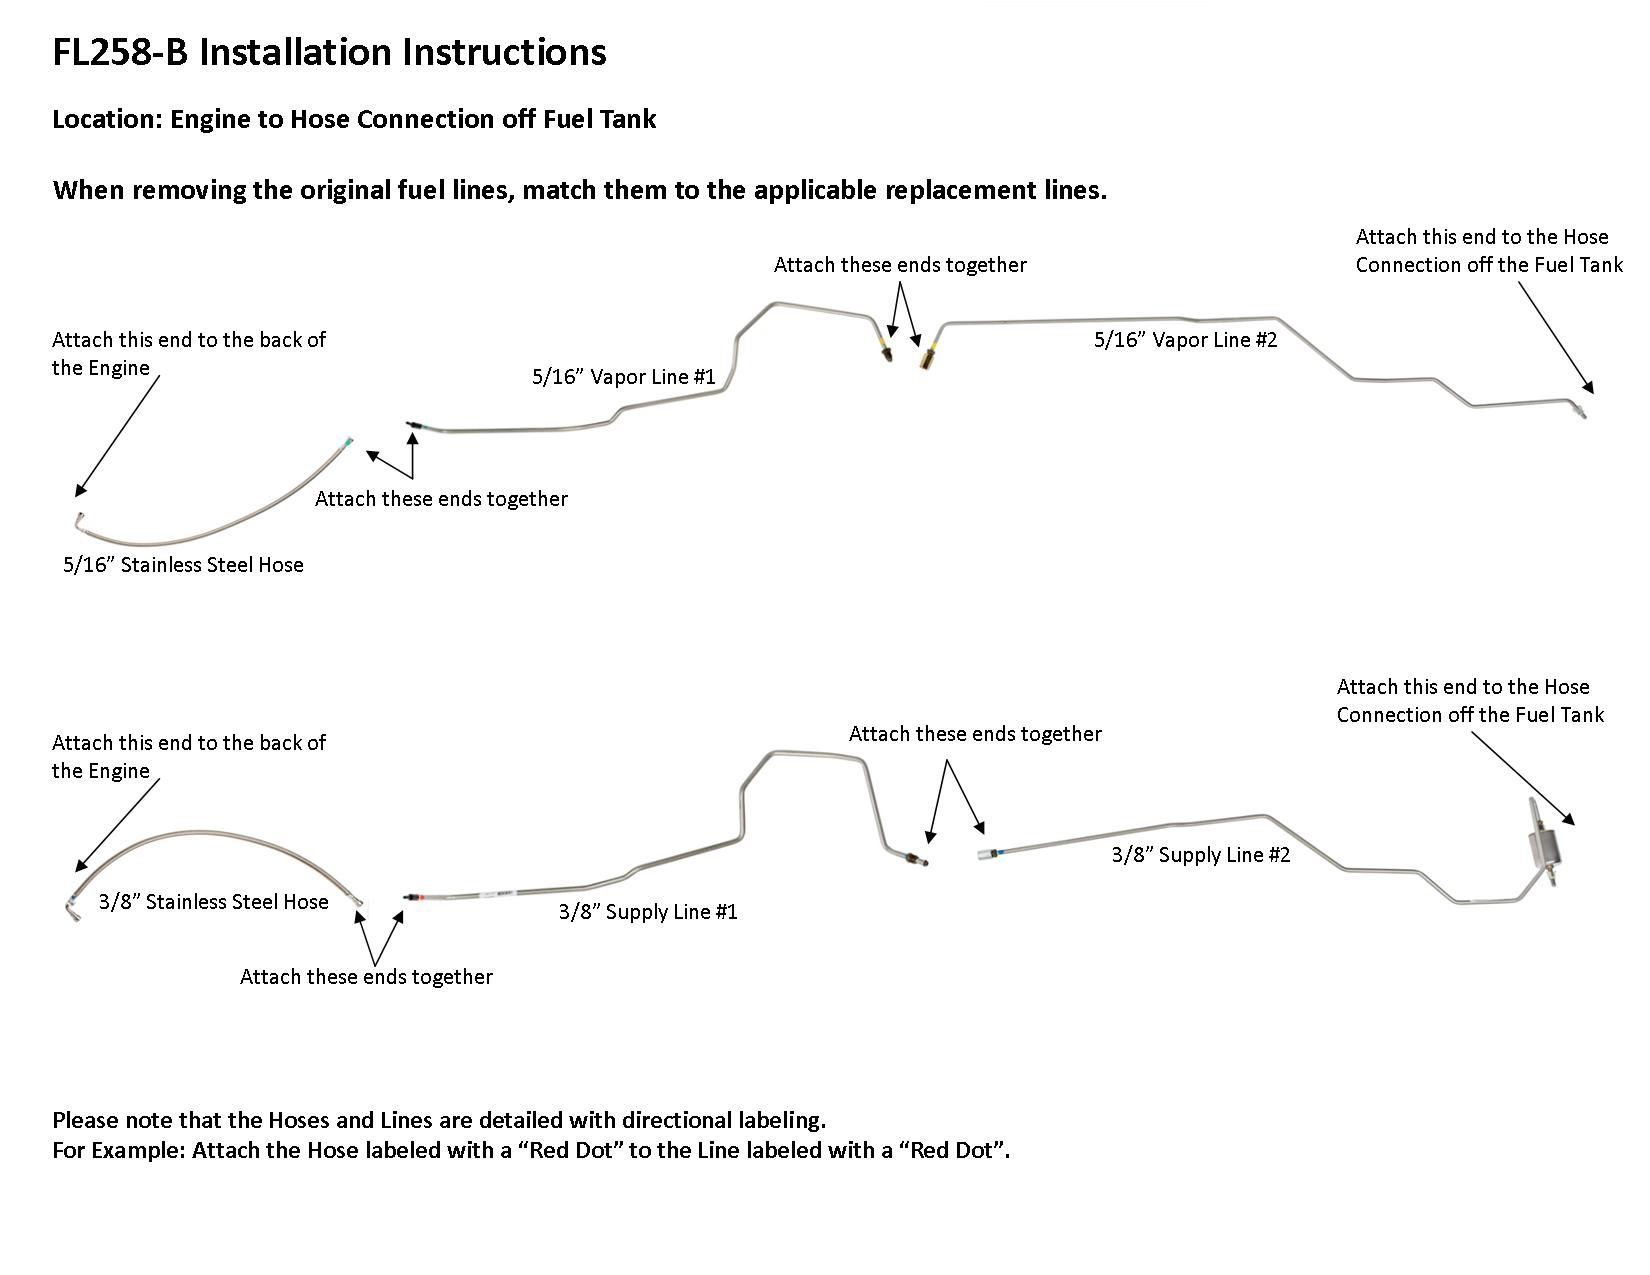 FL258-B Installation Instructions - Lines To Go